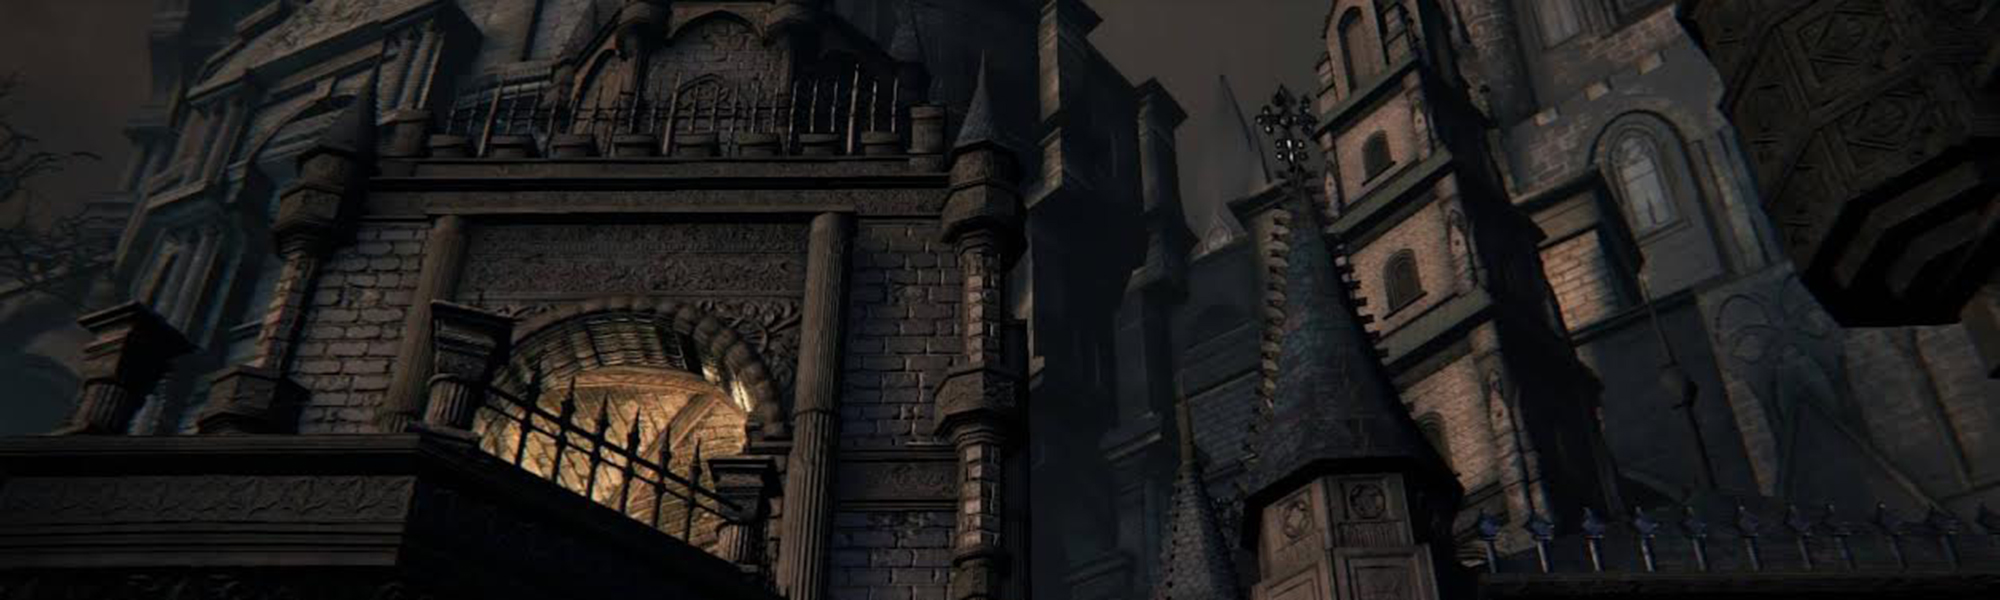 header_bloodborne_architecture_1